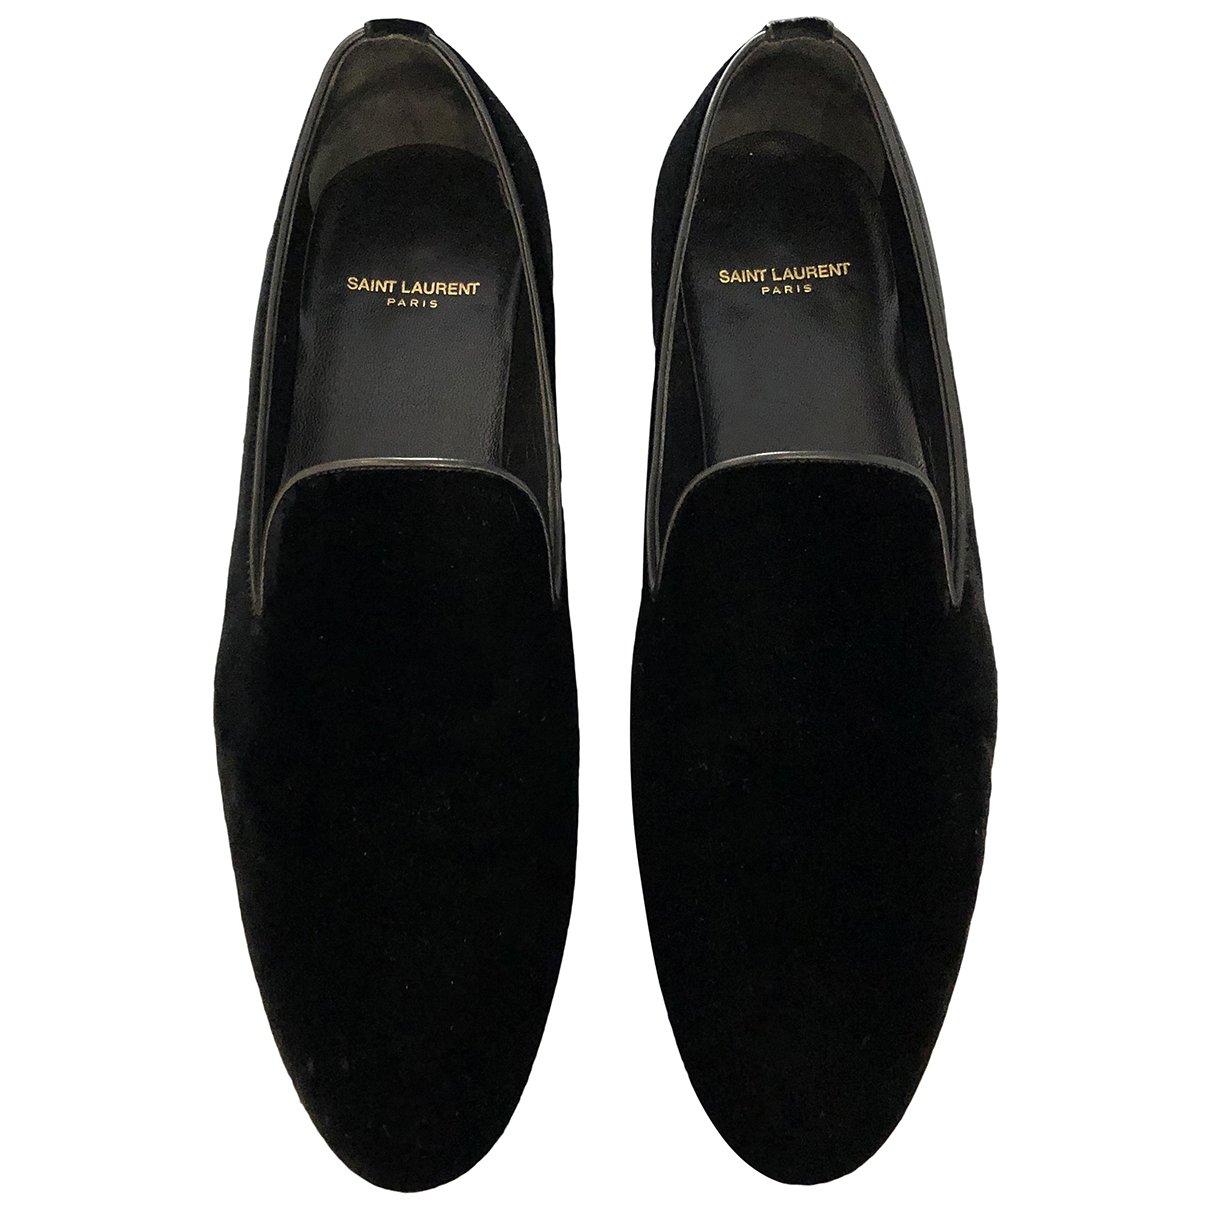 Mocasines Smocking de Terciopelo Saint Laurent